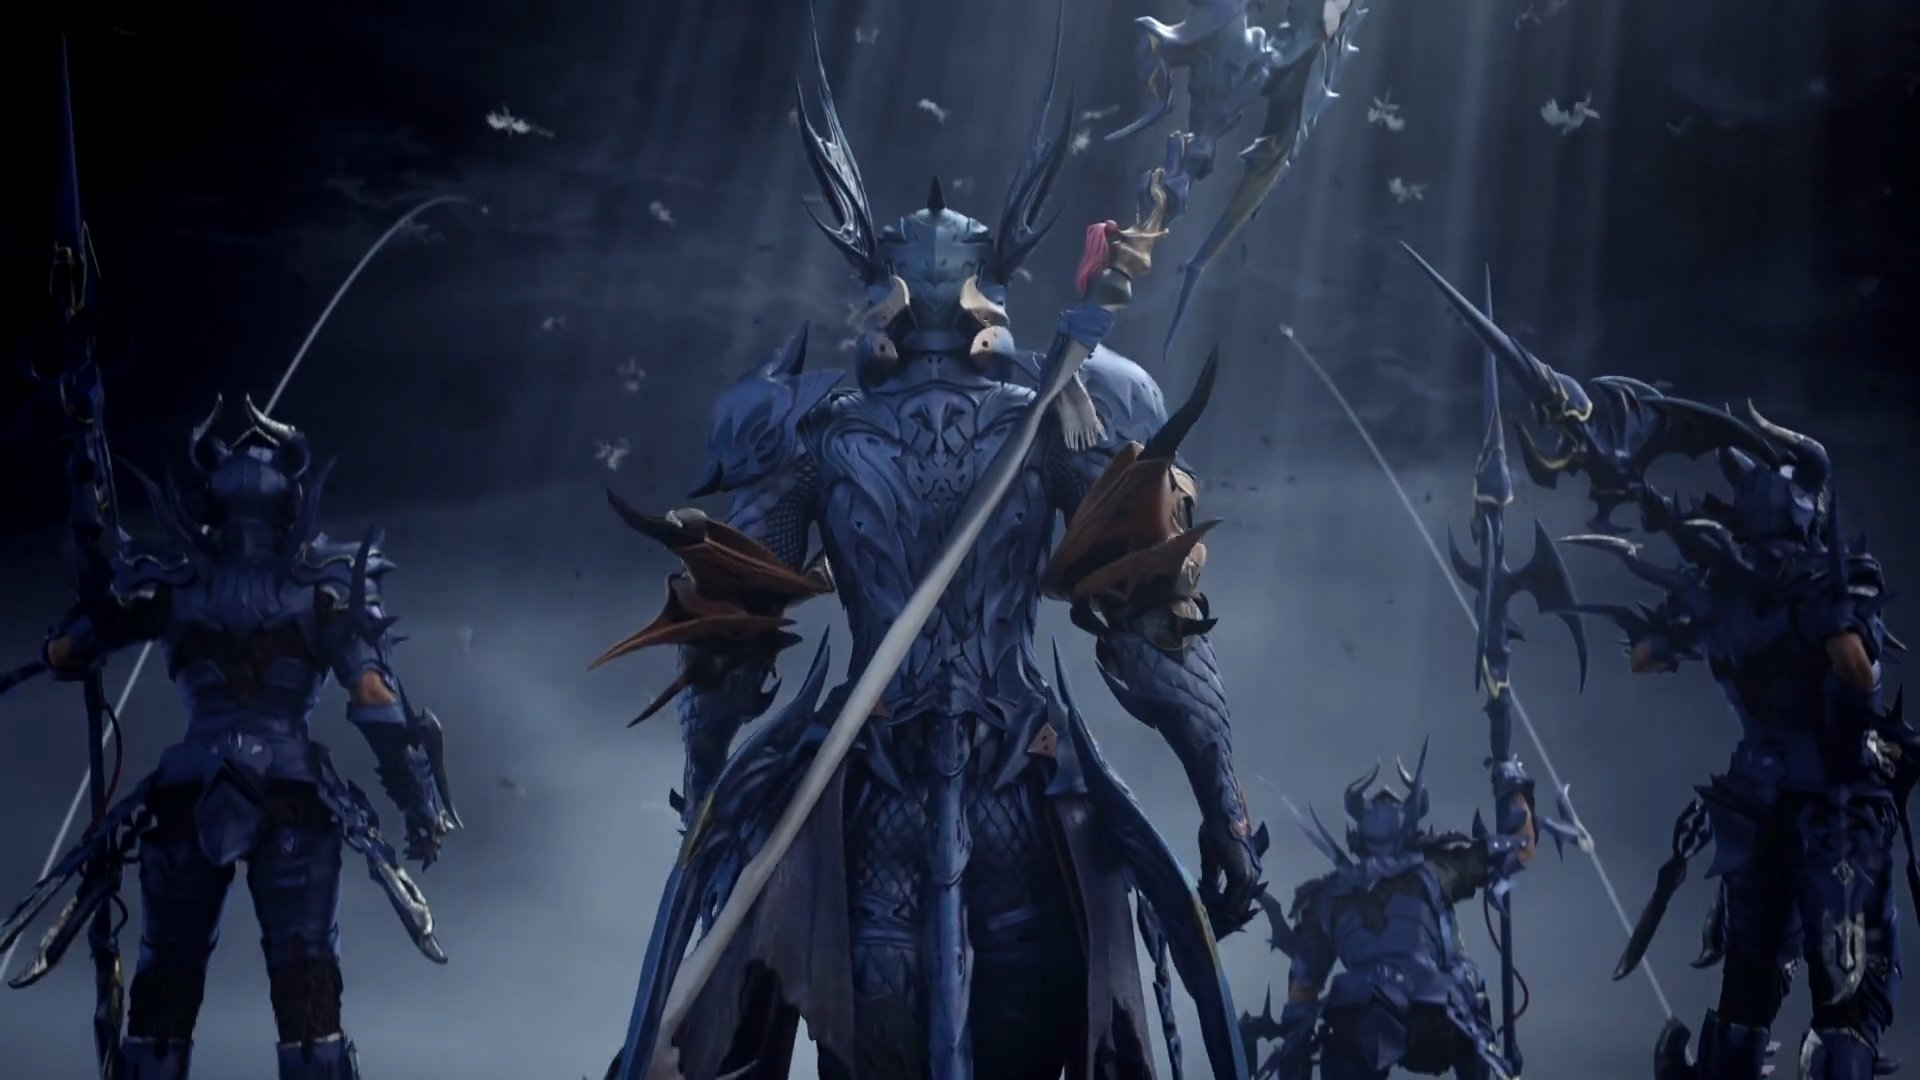 Check out the first trailer for Final Fantasy XIV Heavensward 1920x1080